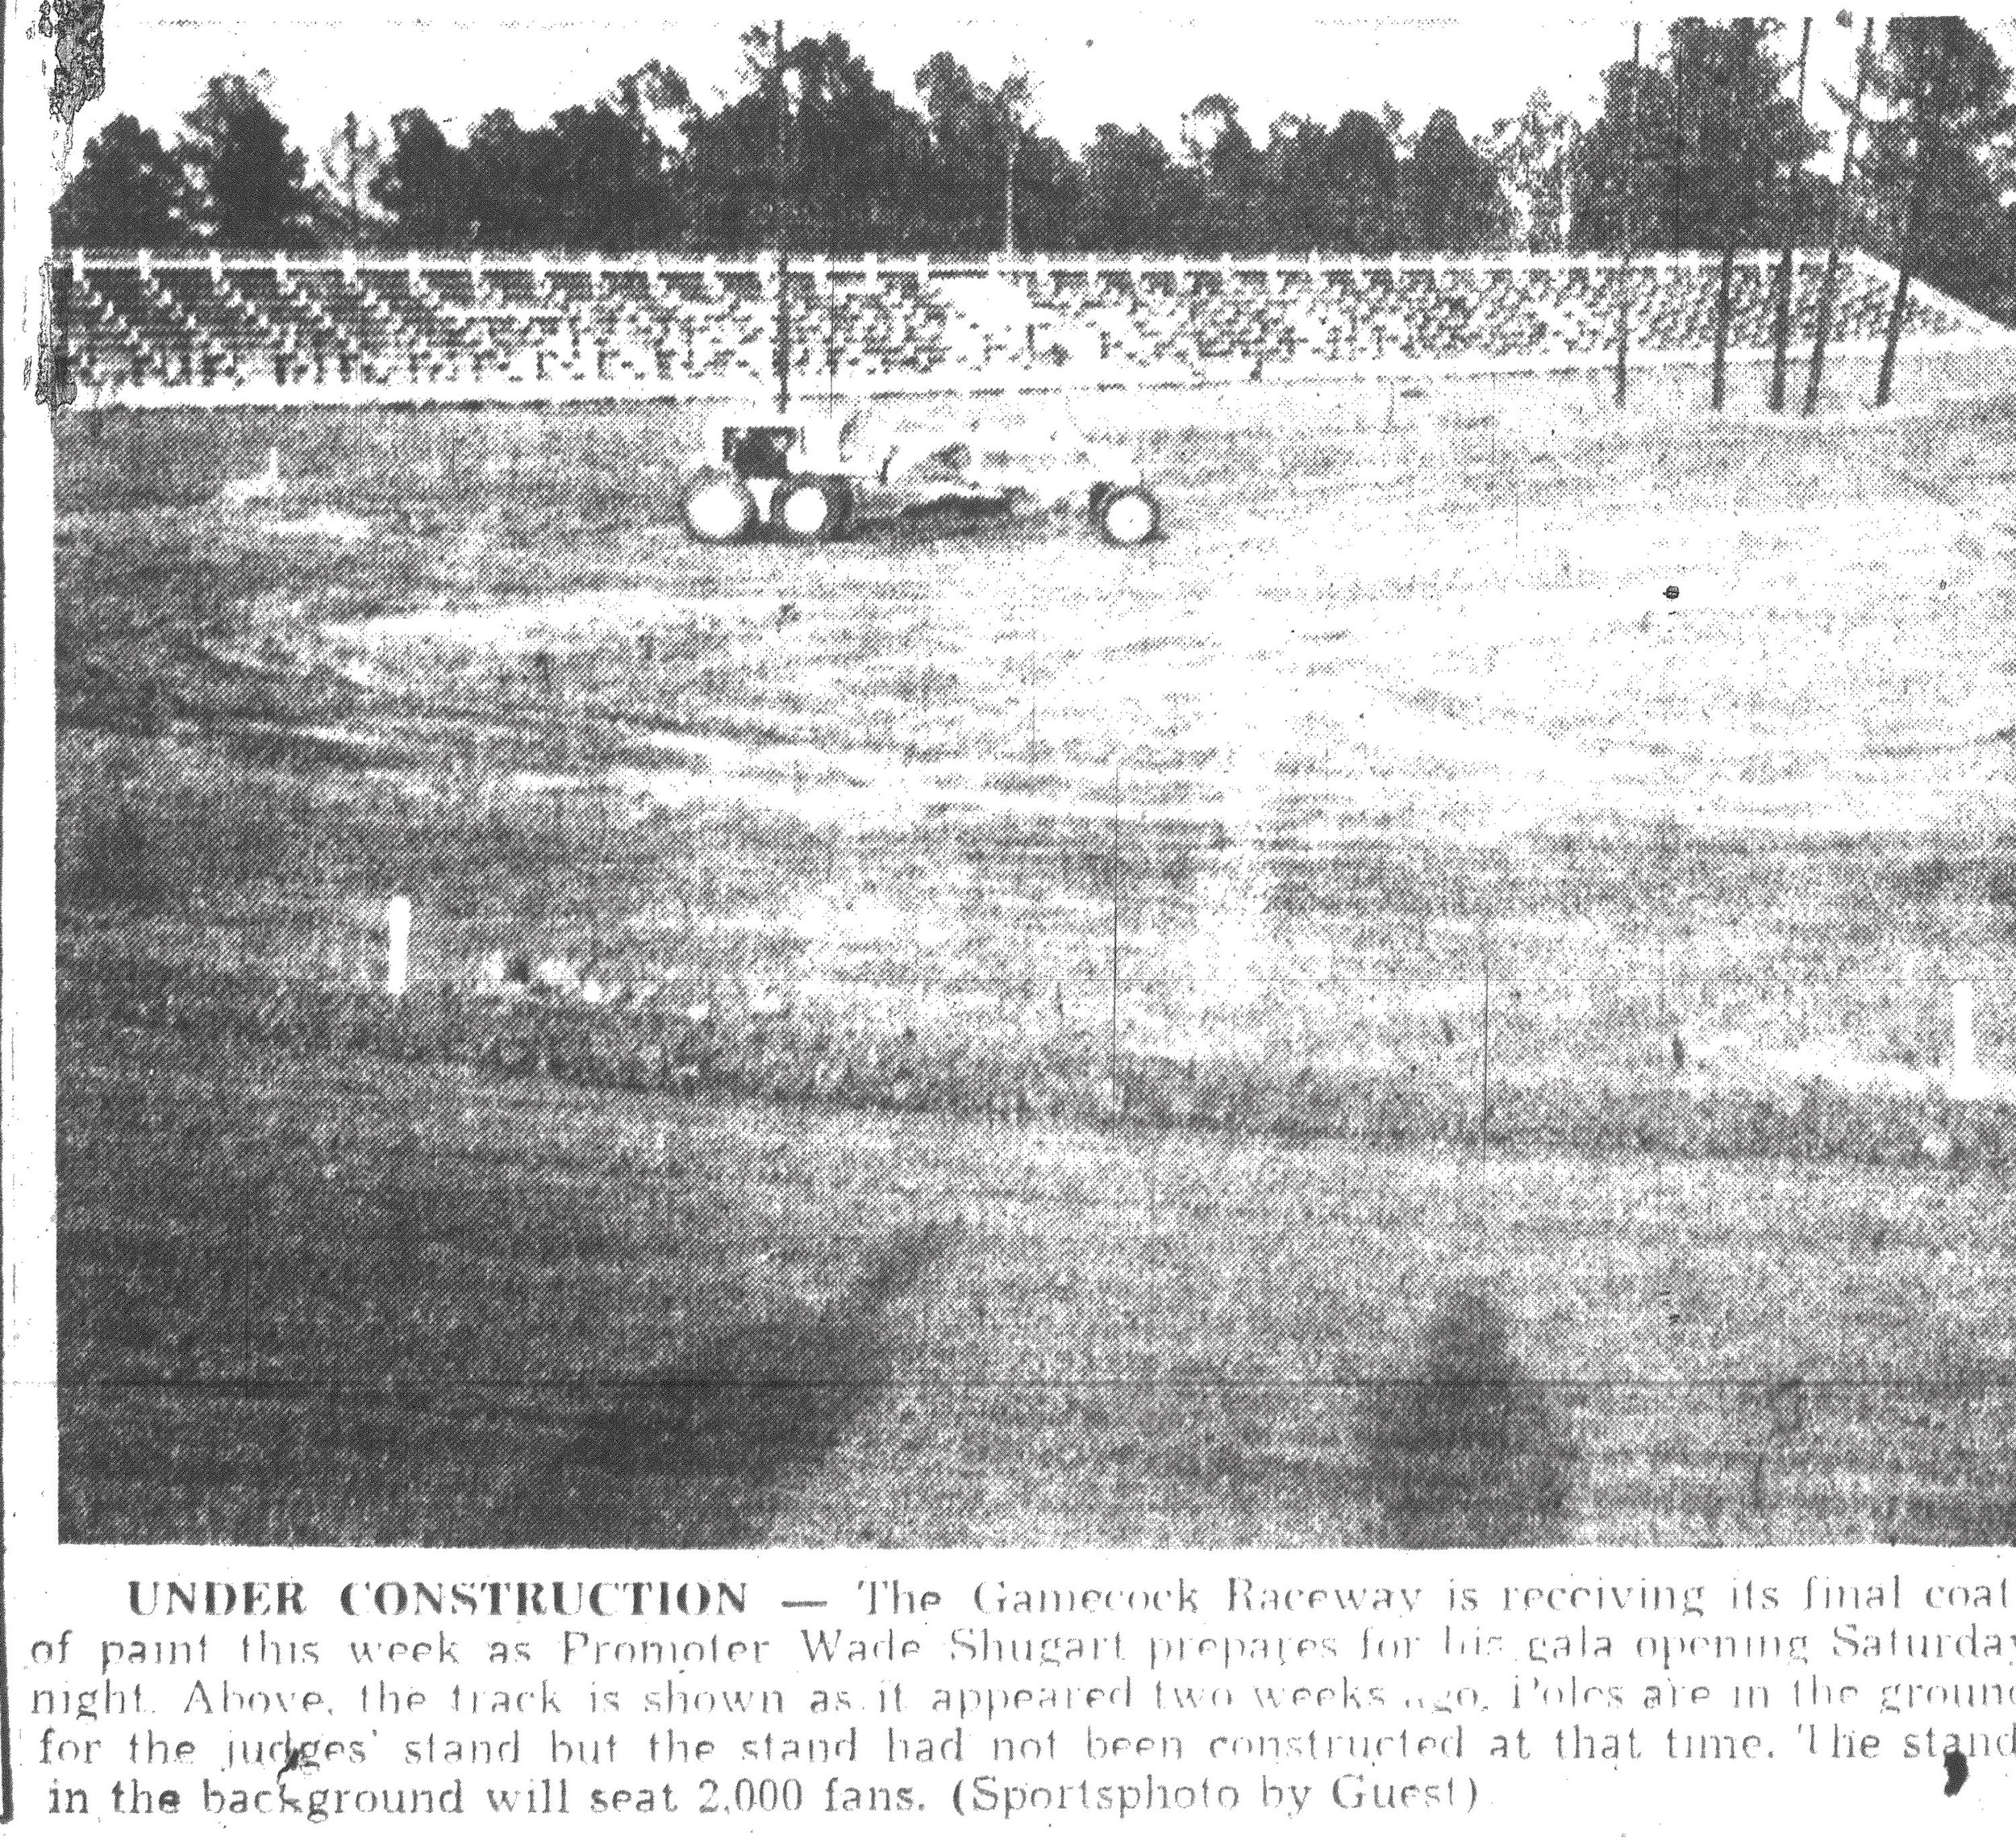 The Gamecock Raceway received its final coat of paint in 1957 as promoter Wade Shugart prepared for his gala opening. The track is shown above as it appeared two weeks before. Poles were in the ground for the judges' stand, but the stand had not been constructed at that time. The stand in the background seated 2,000 fans.